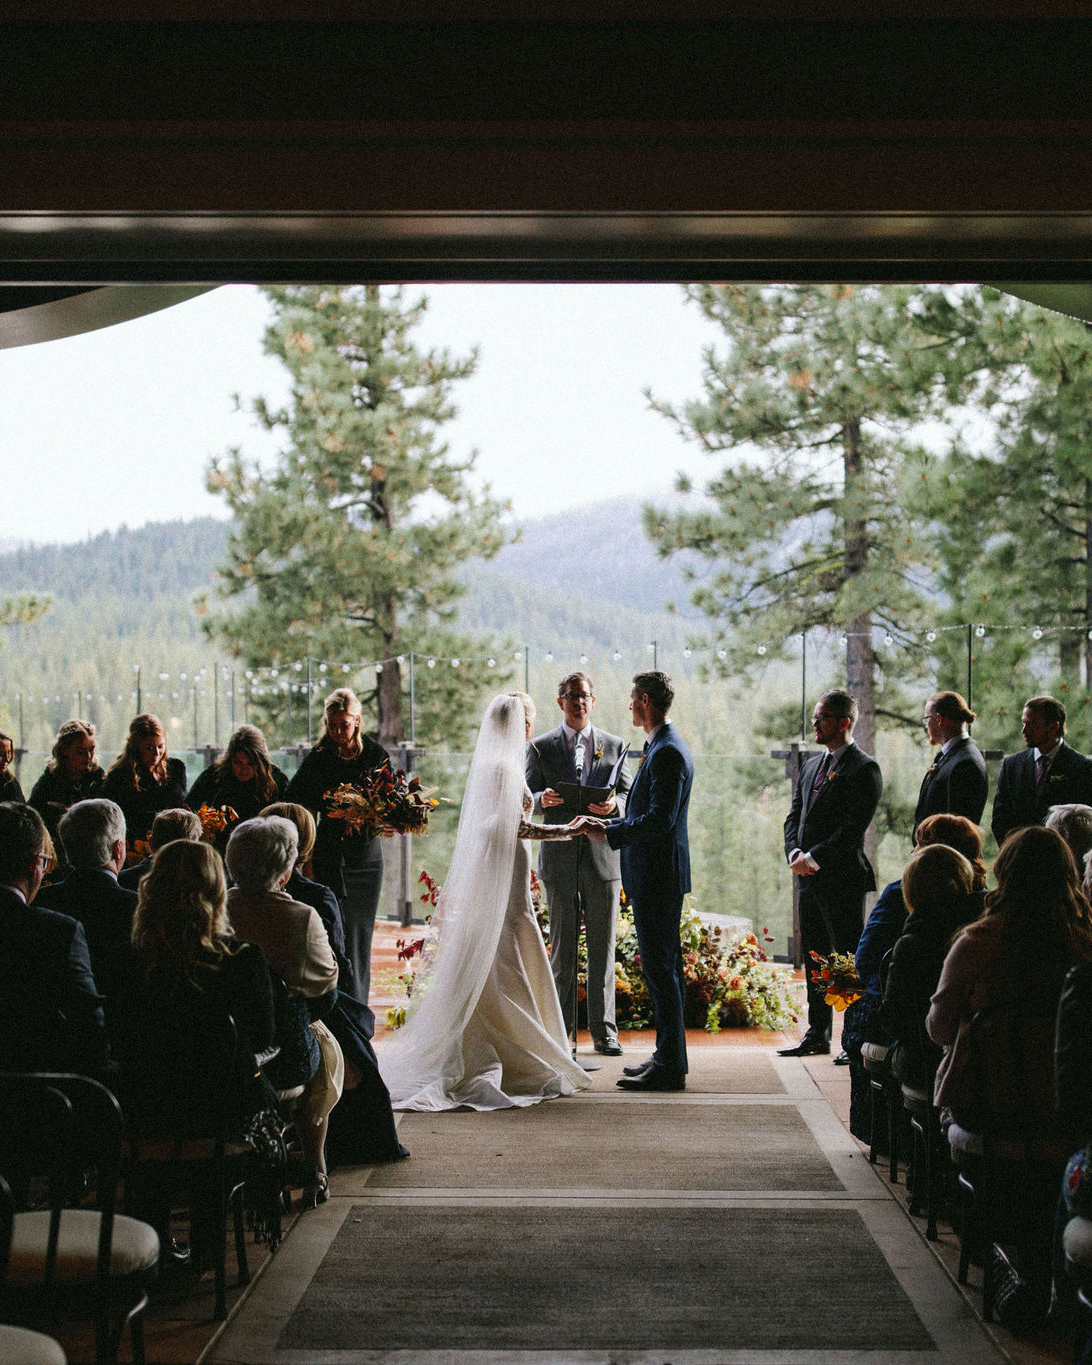 clare tim wedding ceremony with mountain view